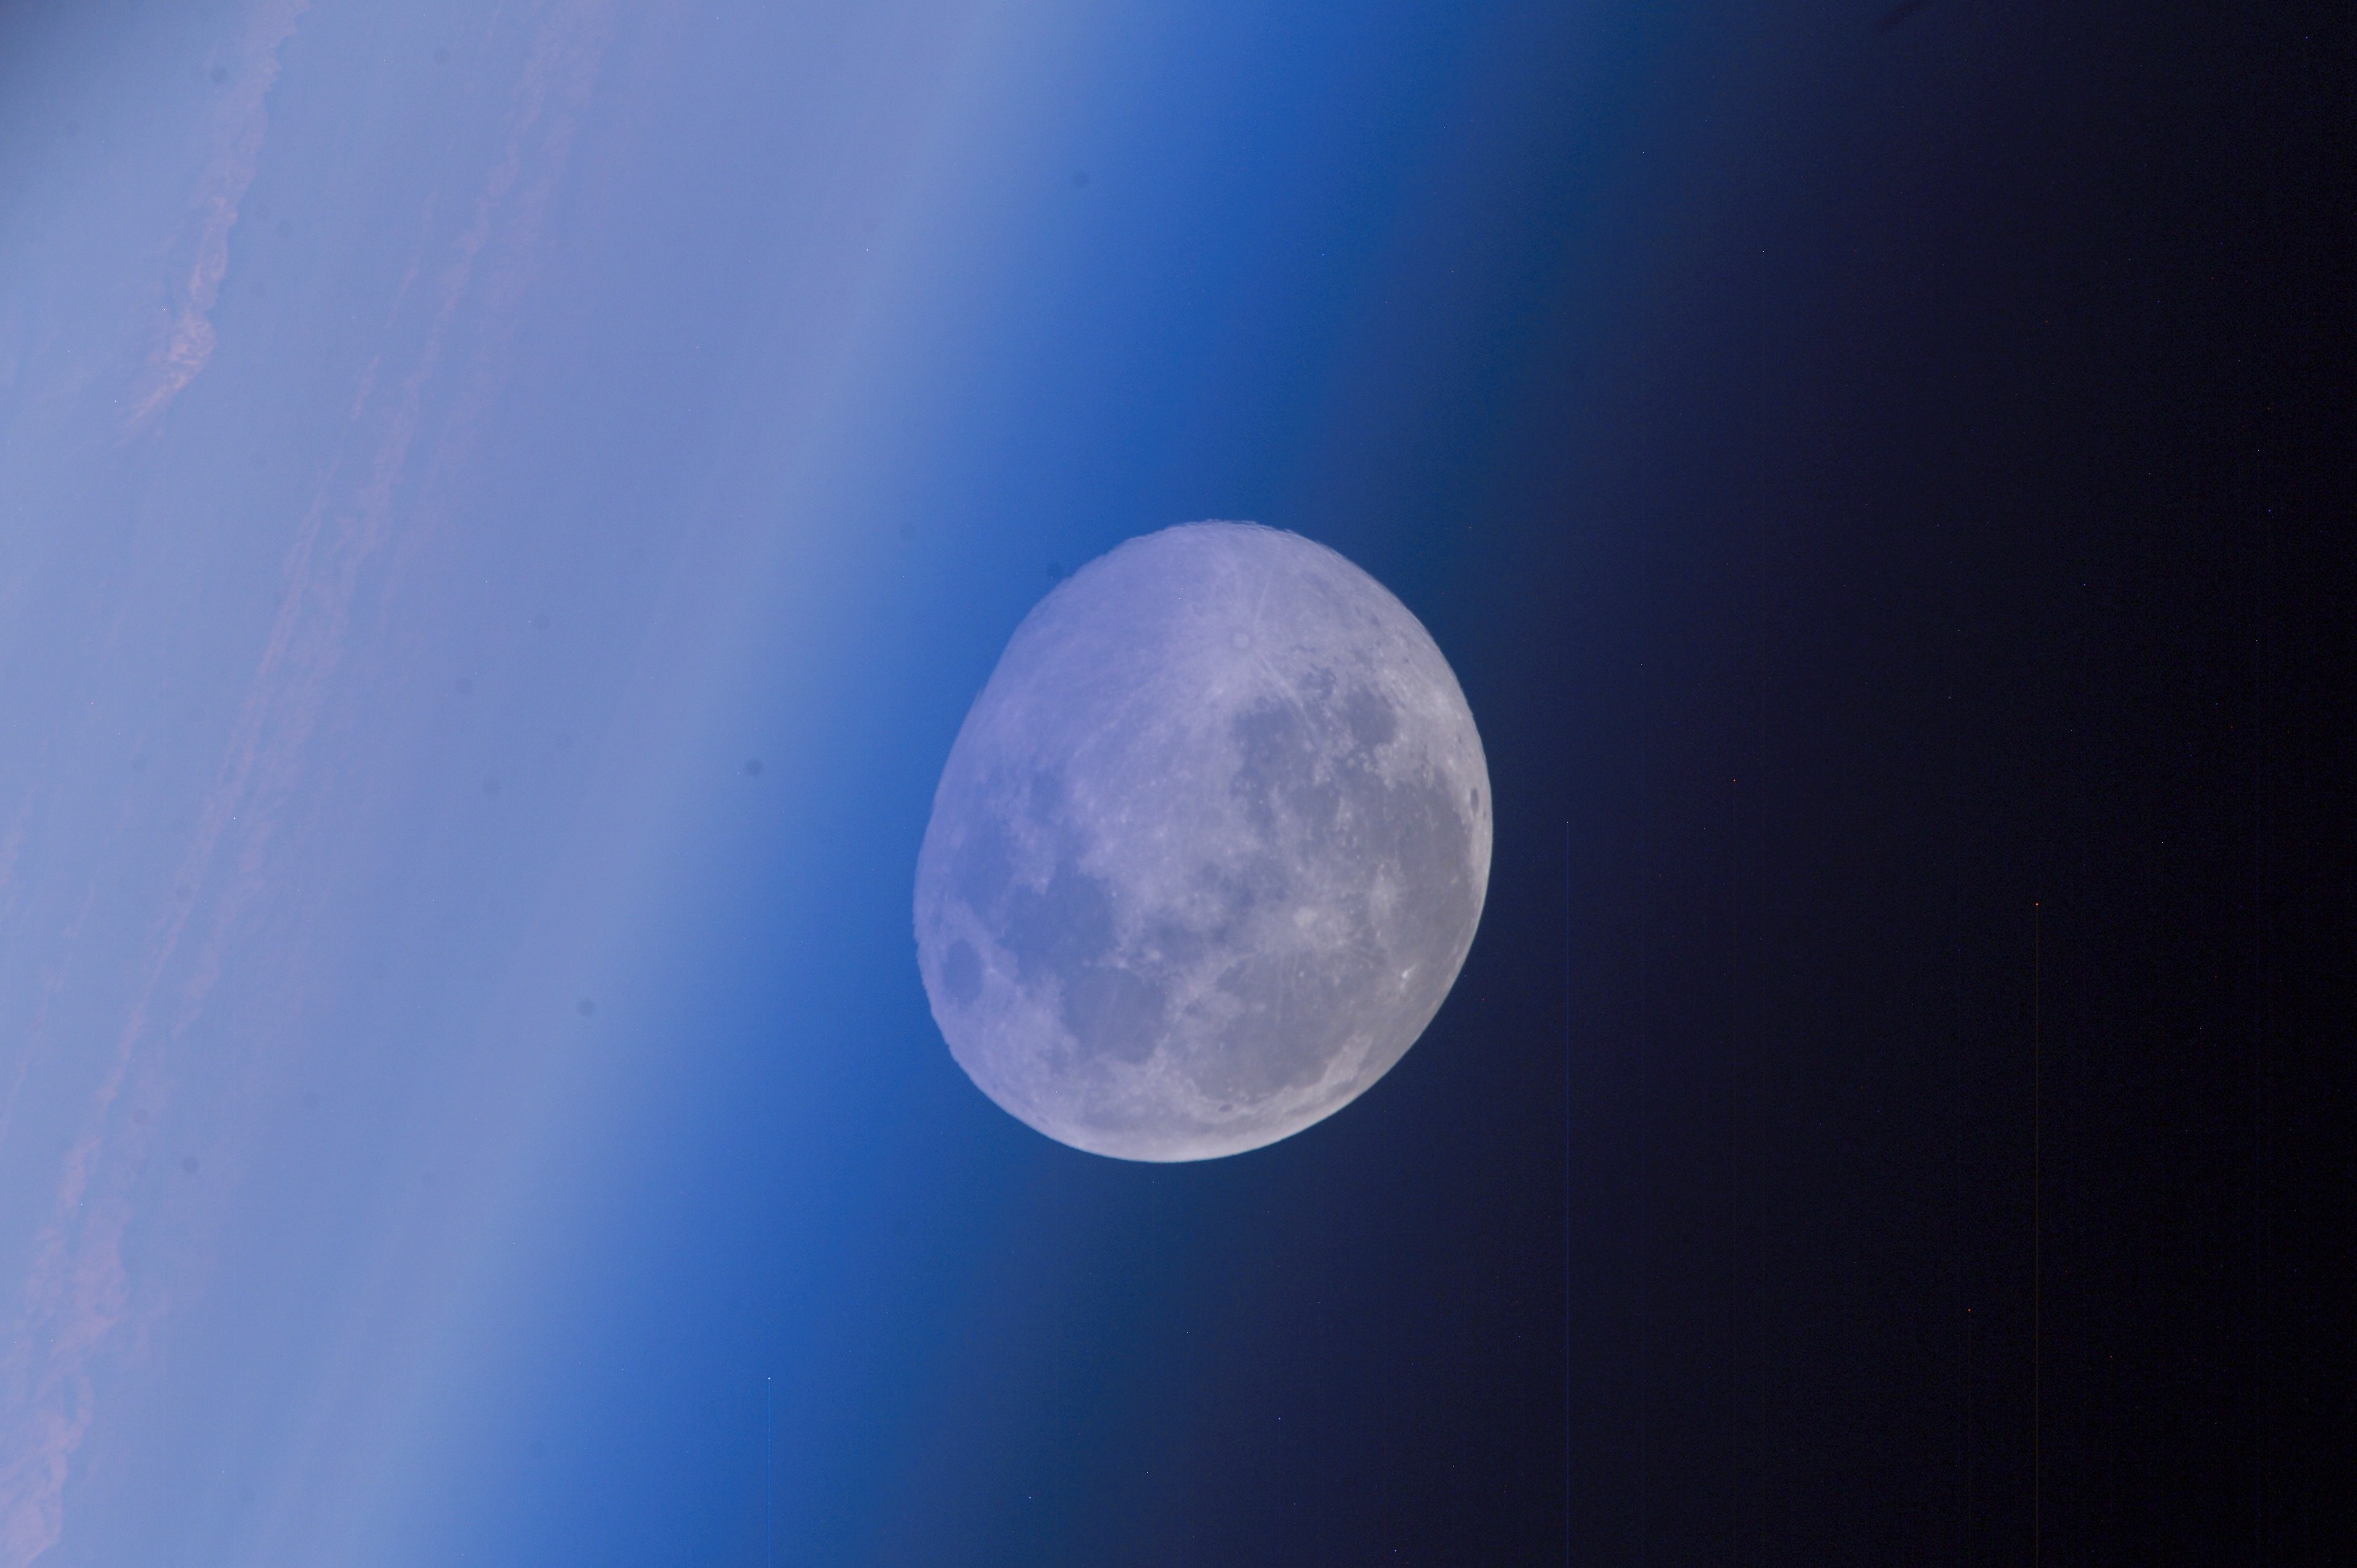 moon at horizon seen through blue hazy atmosphere